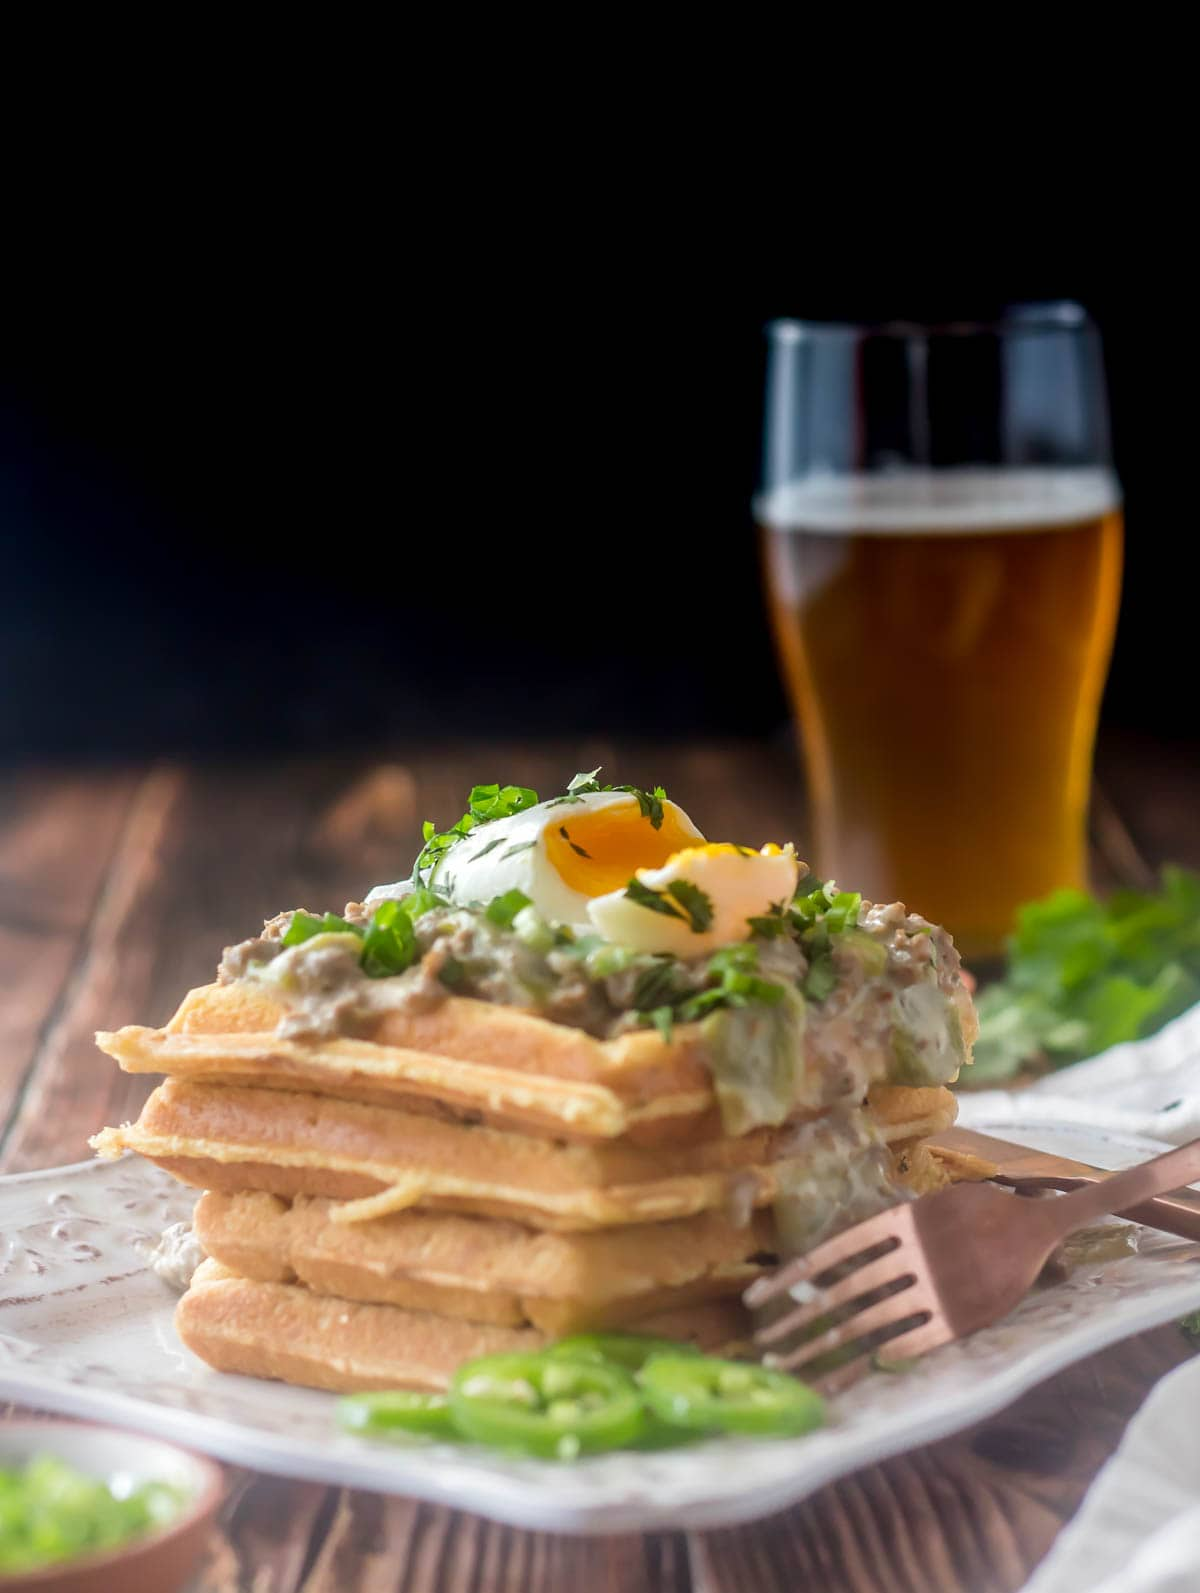 Waffles with green chile sausage gravy, a poached egg with broken yolk, and copper flatware.